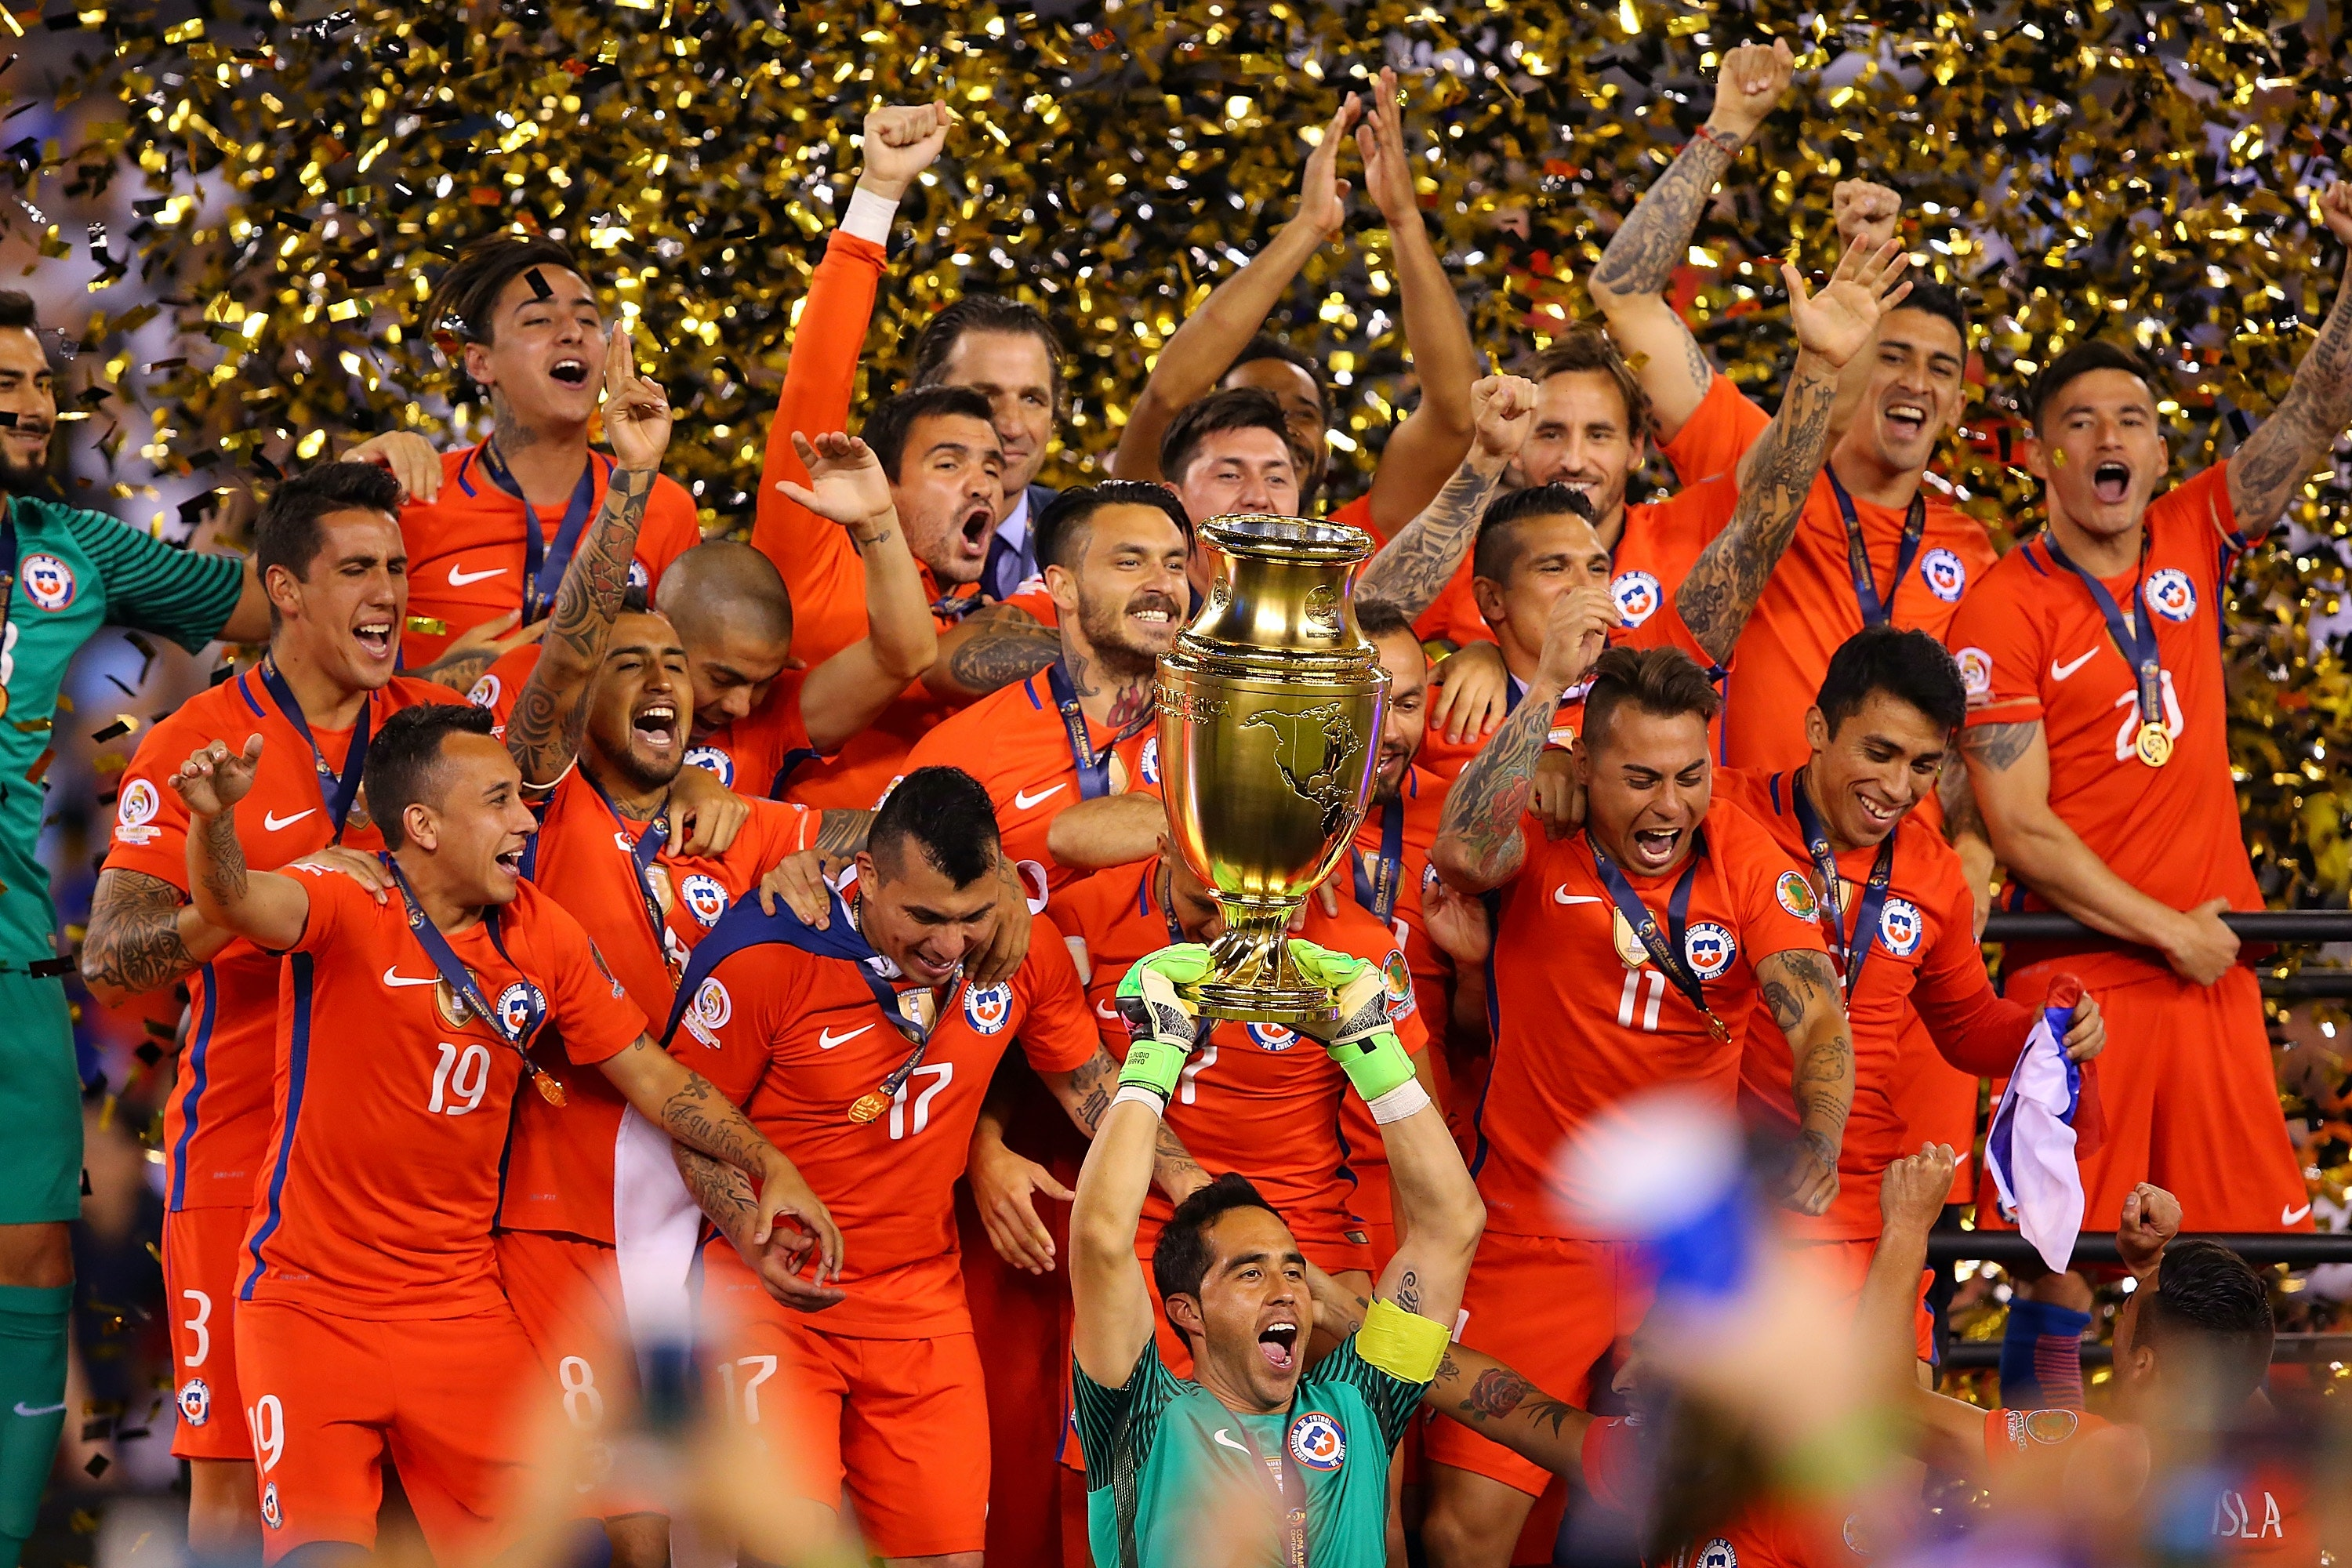 EAST RUTHERFORD, NJ - JUNE 26: Claudio Bravo #1 of Chile hoist the trophy after defeating Argentina to win the Copa America Centenario Championship match at MetLife Stadium on June 26, 2016 in East Rutherford, New Jersey. Chile defeated Argentina 4-2 in penalty kicks. (Photo by Mike Stobe/Getty Images)